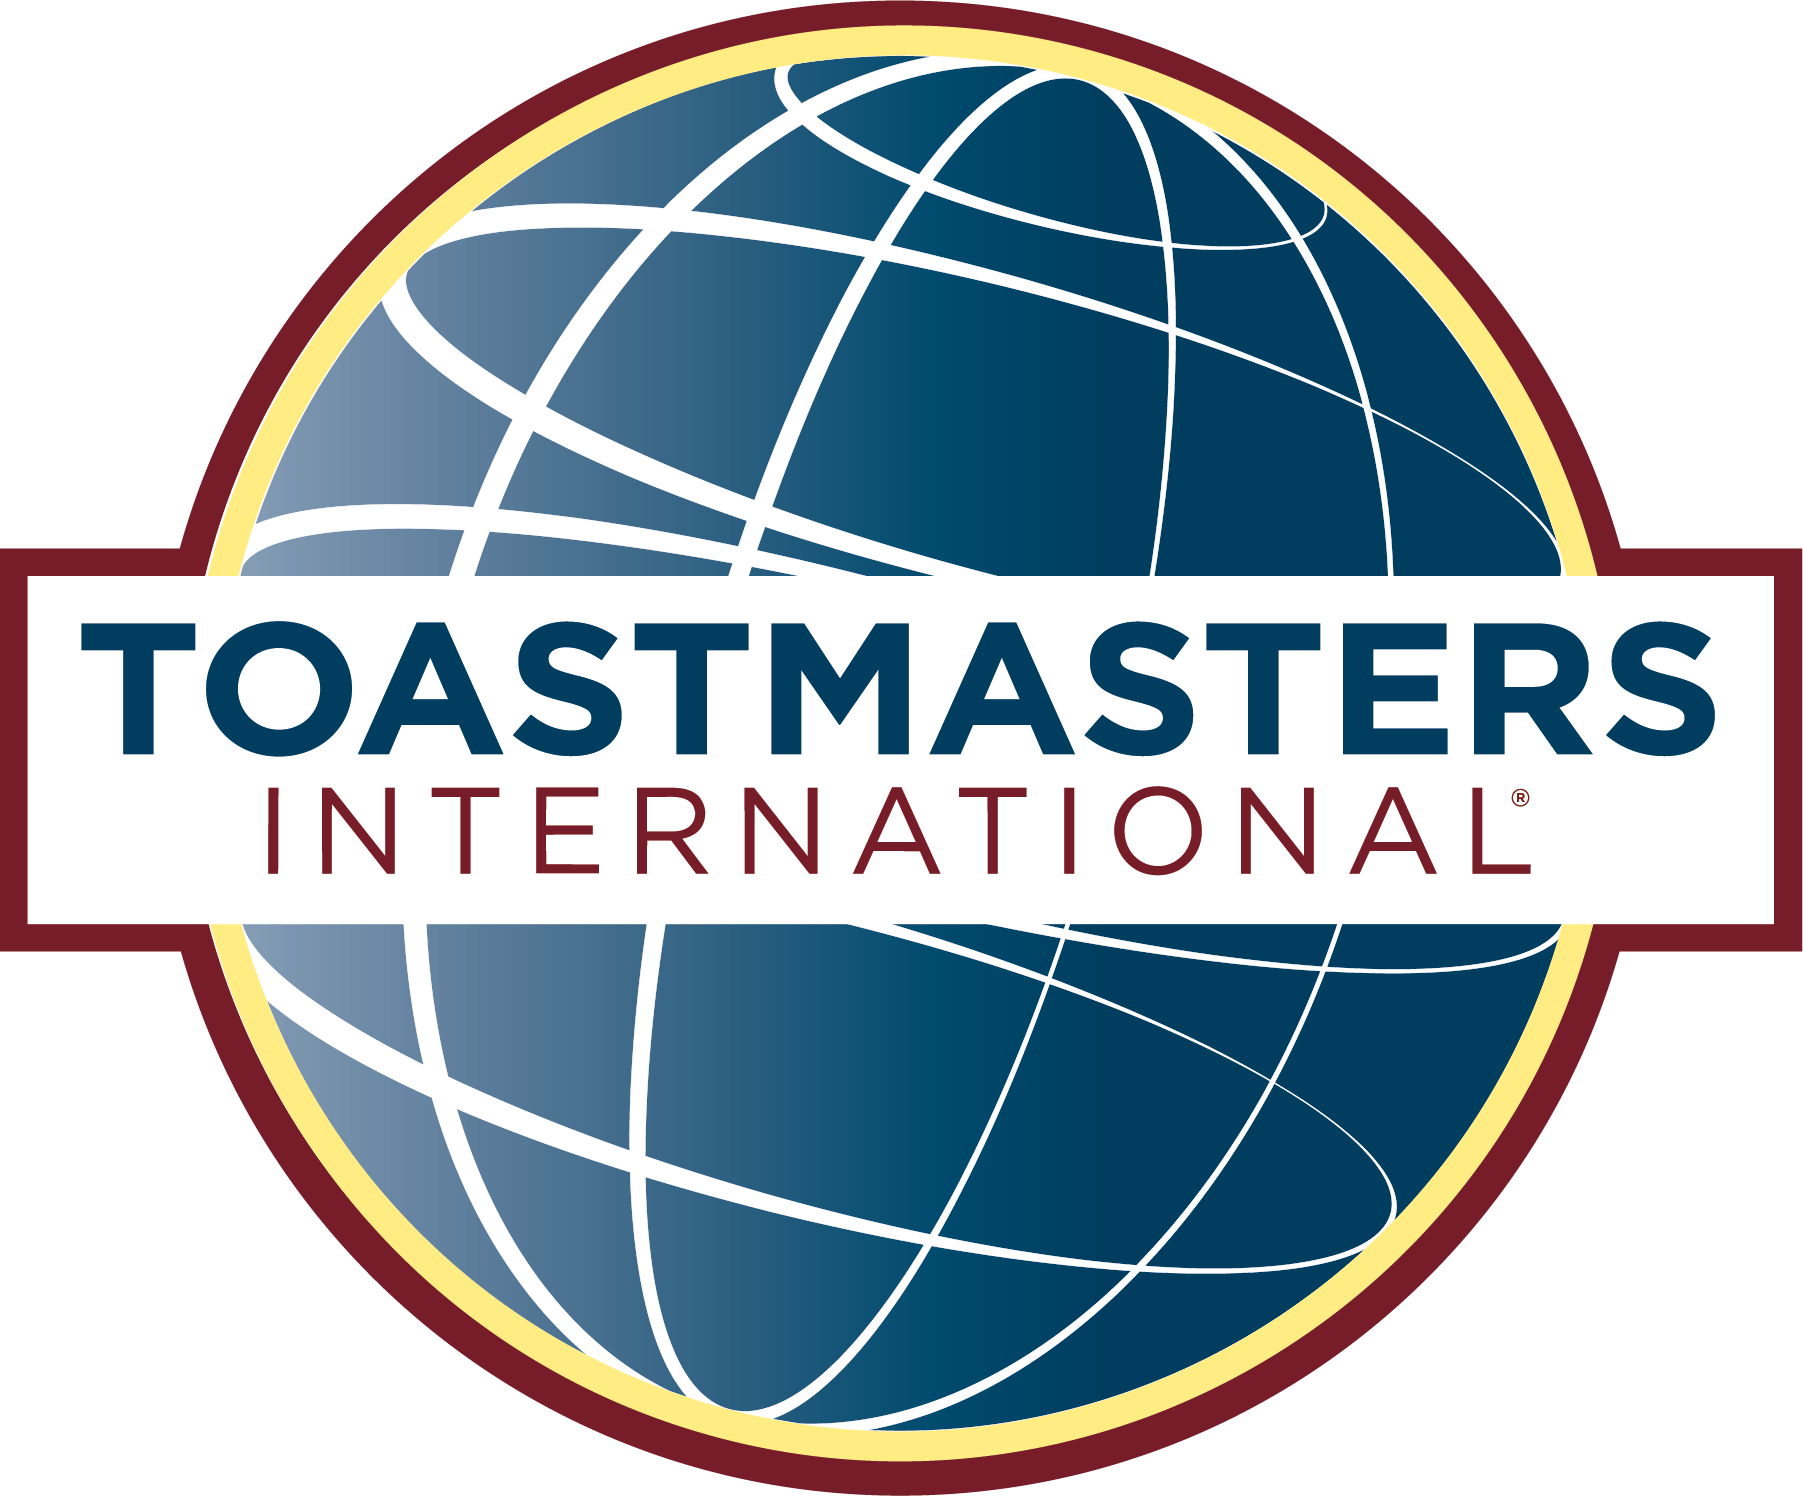 https://www.toastmasters.org/Leadership-Central/Logos-Images-and-Templates/~/media/4BDB0DB436004830BA1DB7780BC6B3A0.ashx